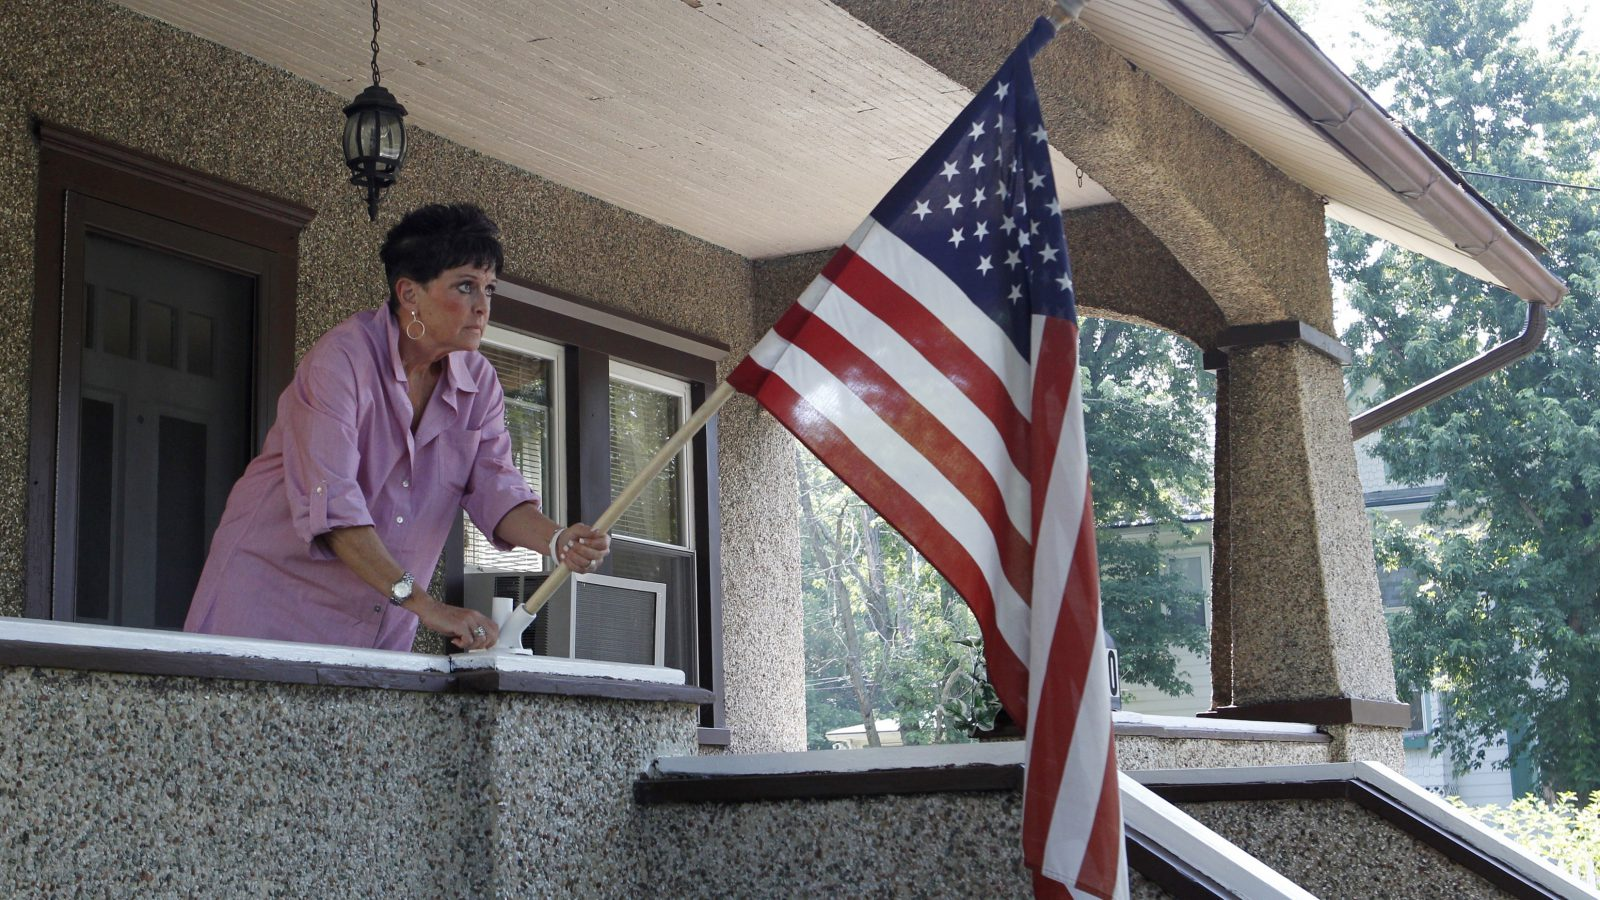 Unemployed operations manager Mary Kay Coyne unfurls a U.S. flag on the front porch of her residence in Sewell, New Jersey, July 7, 2011. Coyne is one of millions of Americans whose unemployment benefits have expired - after 99 weeks in many states - as the United States suffers its highest level of long-term unemployment since 1948. Unlike in much of Europe, the safety net of the U.S. welfare system times out for the long-term unemployed. The federal government and many states have provided extra help for those caught up in the worst labor market in decades but the U.S. debt crisis rules out further extension of the programs.  To match Feature USA-ECONOMY/UNEMPLOYED    REUTERS/Tim Shaffer (UNITED STATES - Tags: SOCIETY EMPLOYMENT BUSINESS POLITICS) - RTR2OL84